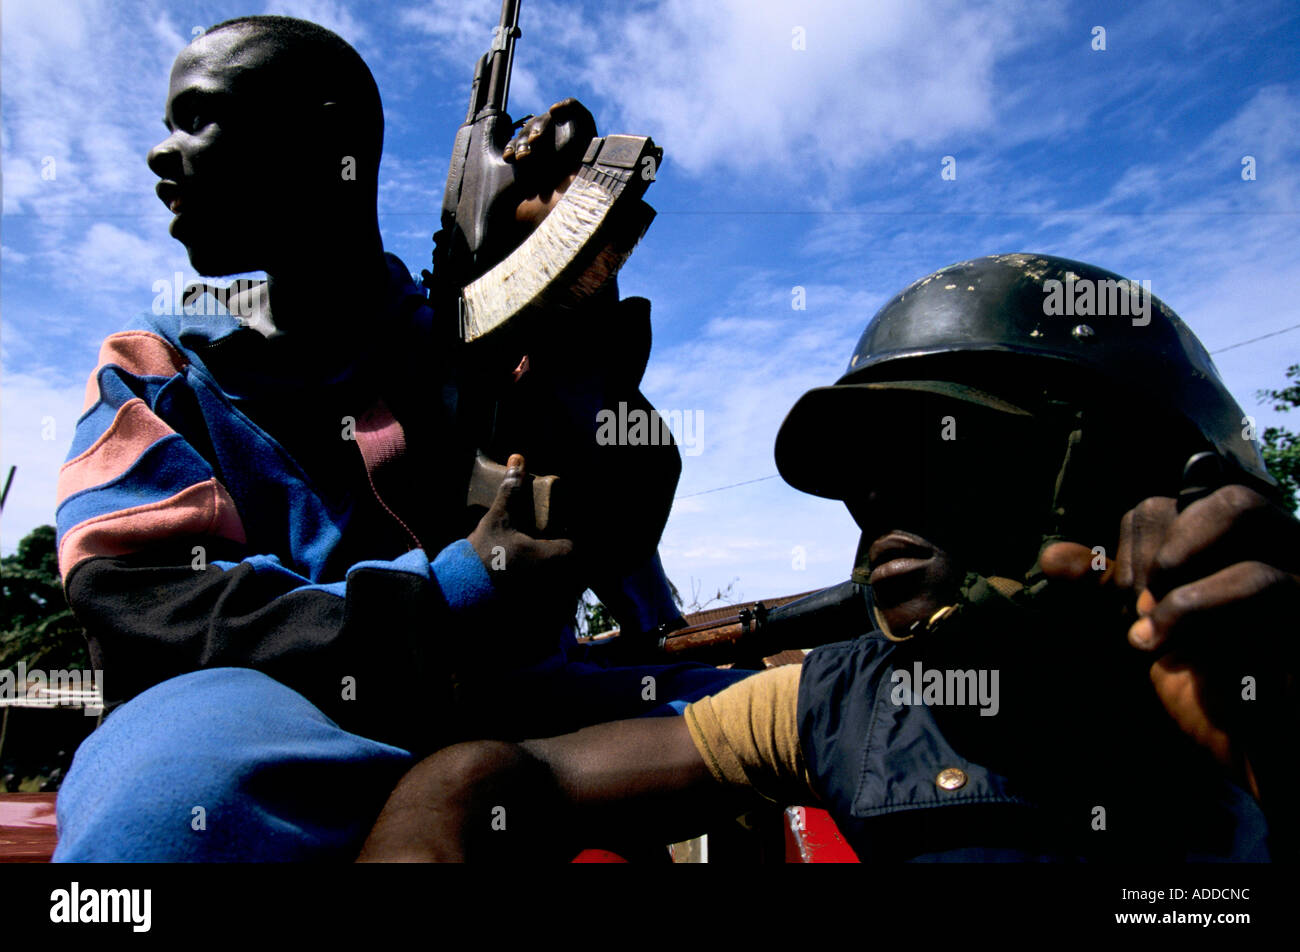 Charles Taylor's Liberia May 96 - NPFL fighters, part of the group guarding Councilman Charles Taylor, in Kakata town. - Stock Image